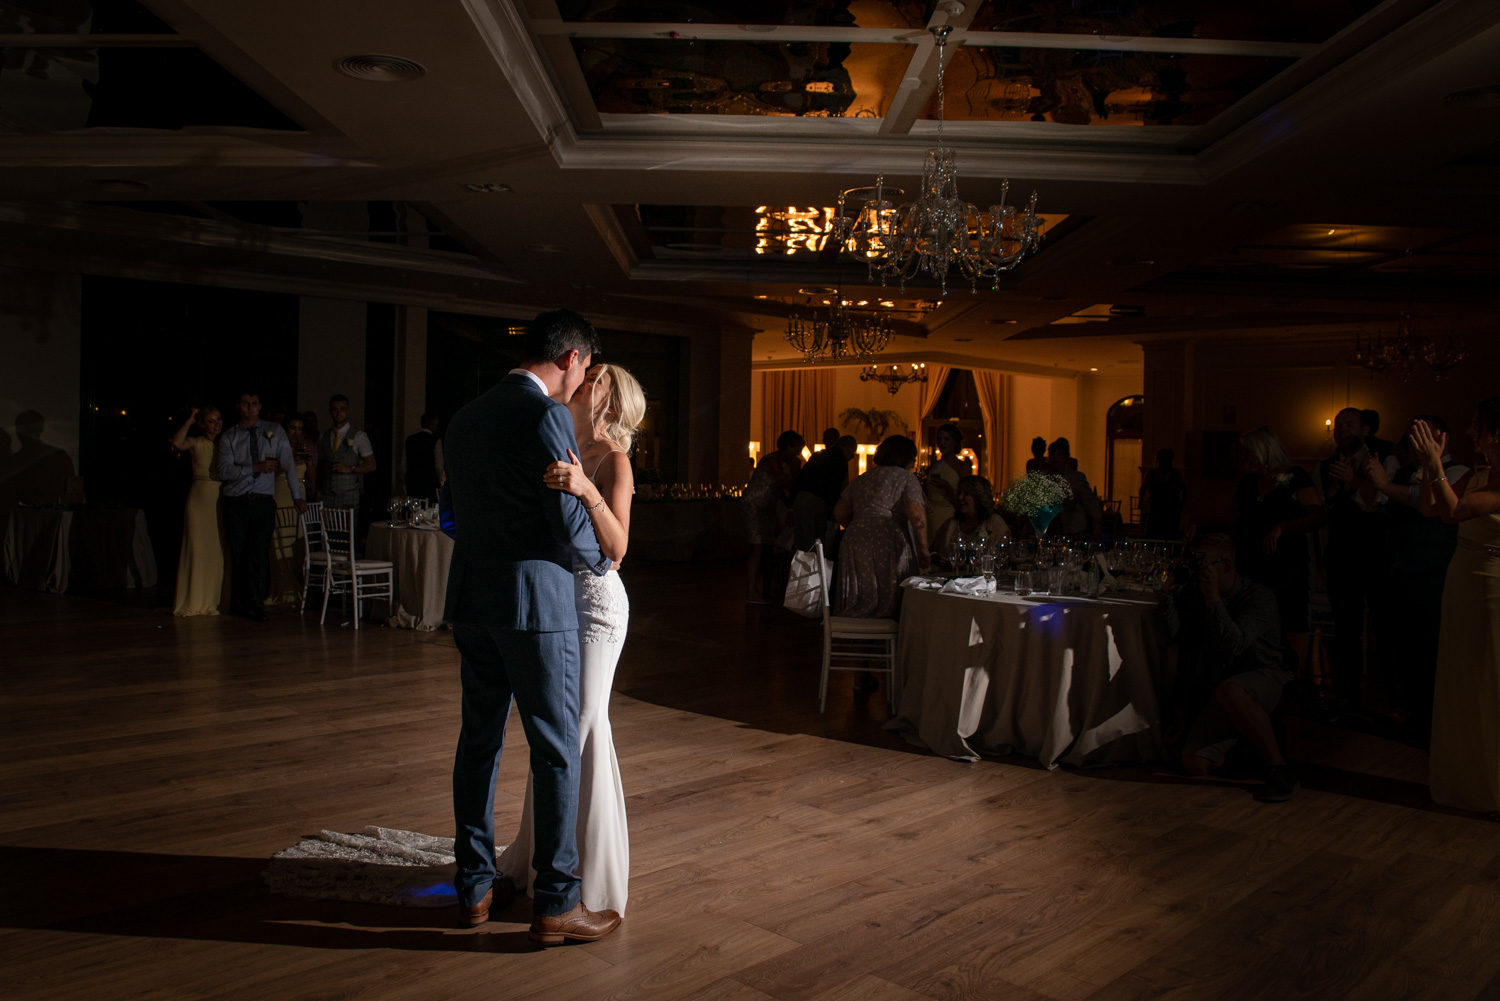 First dance at La vinuela